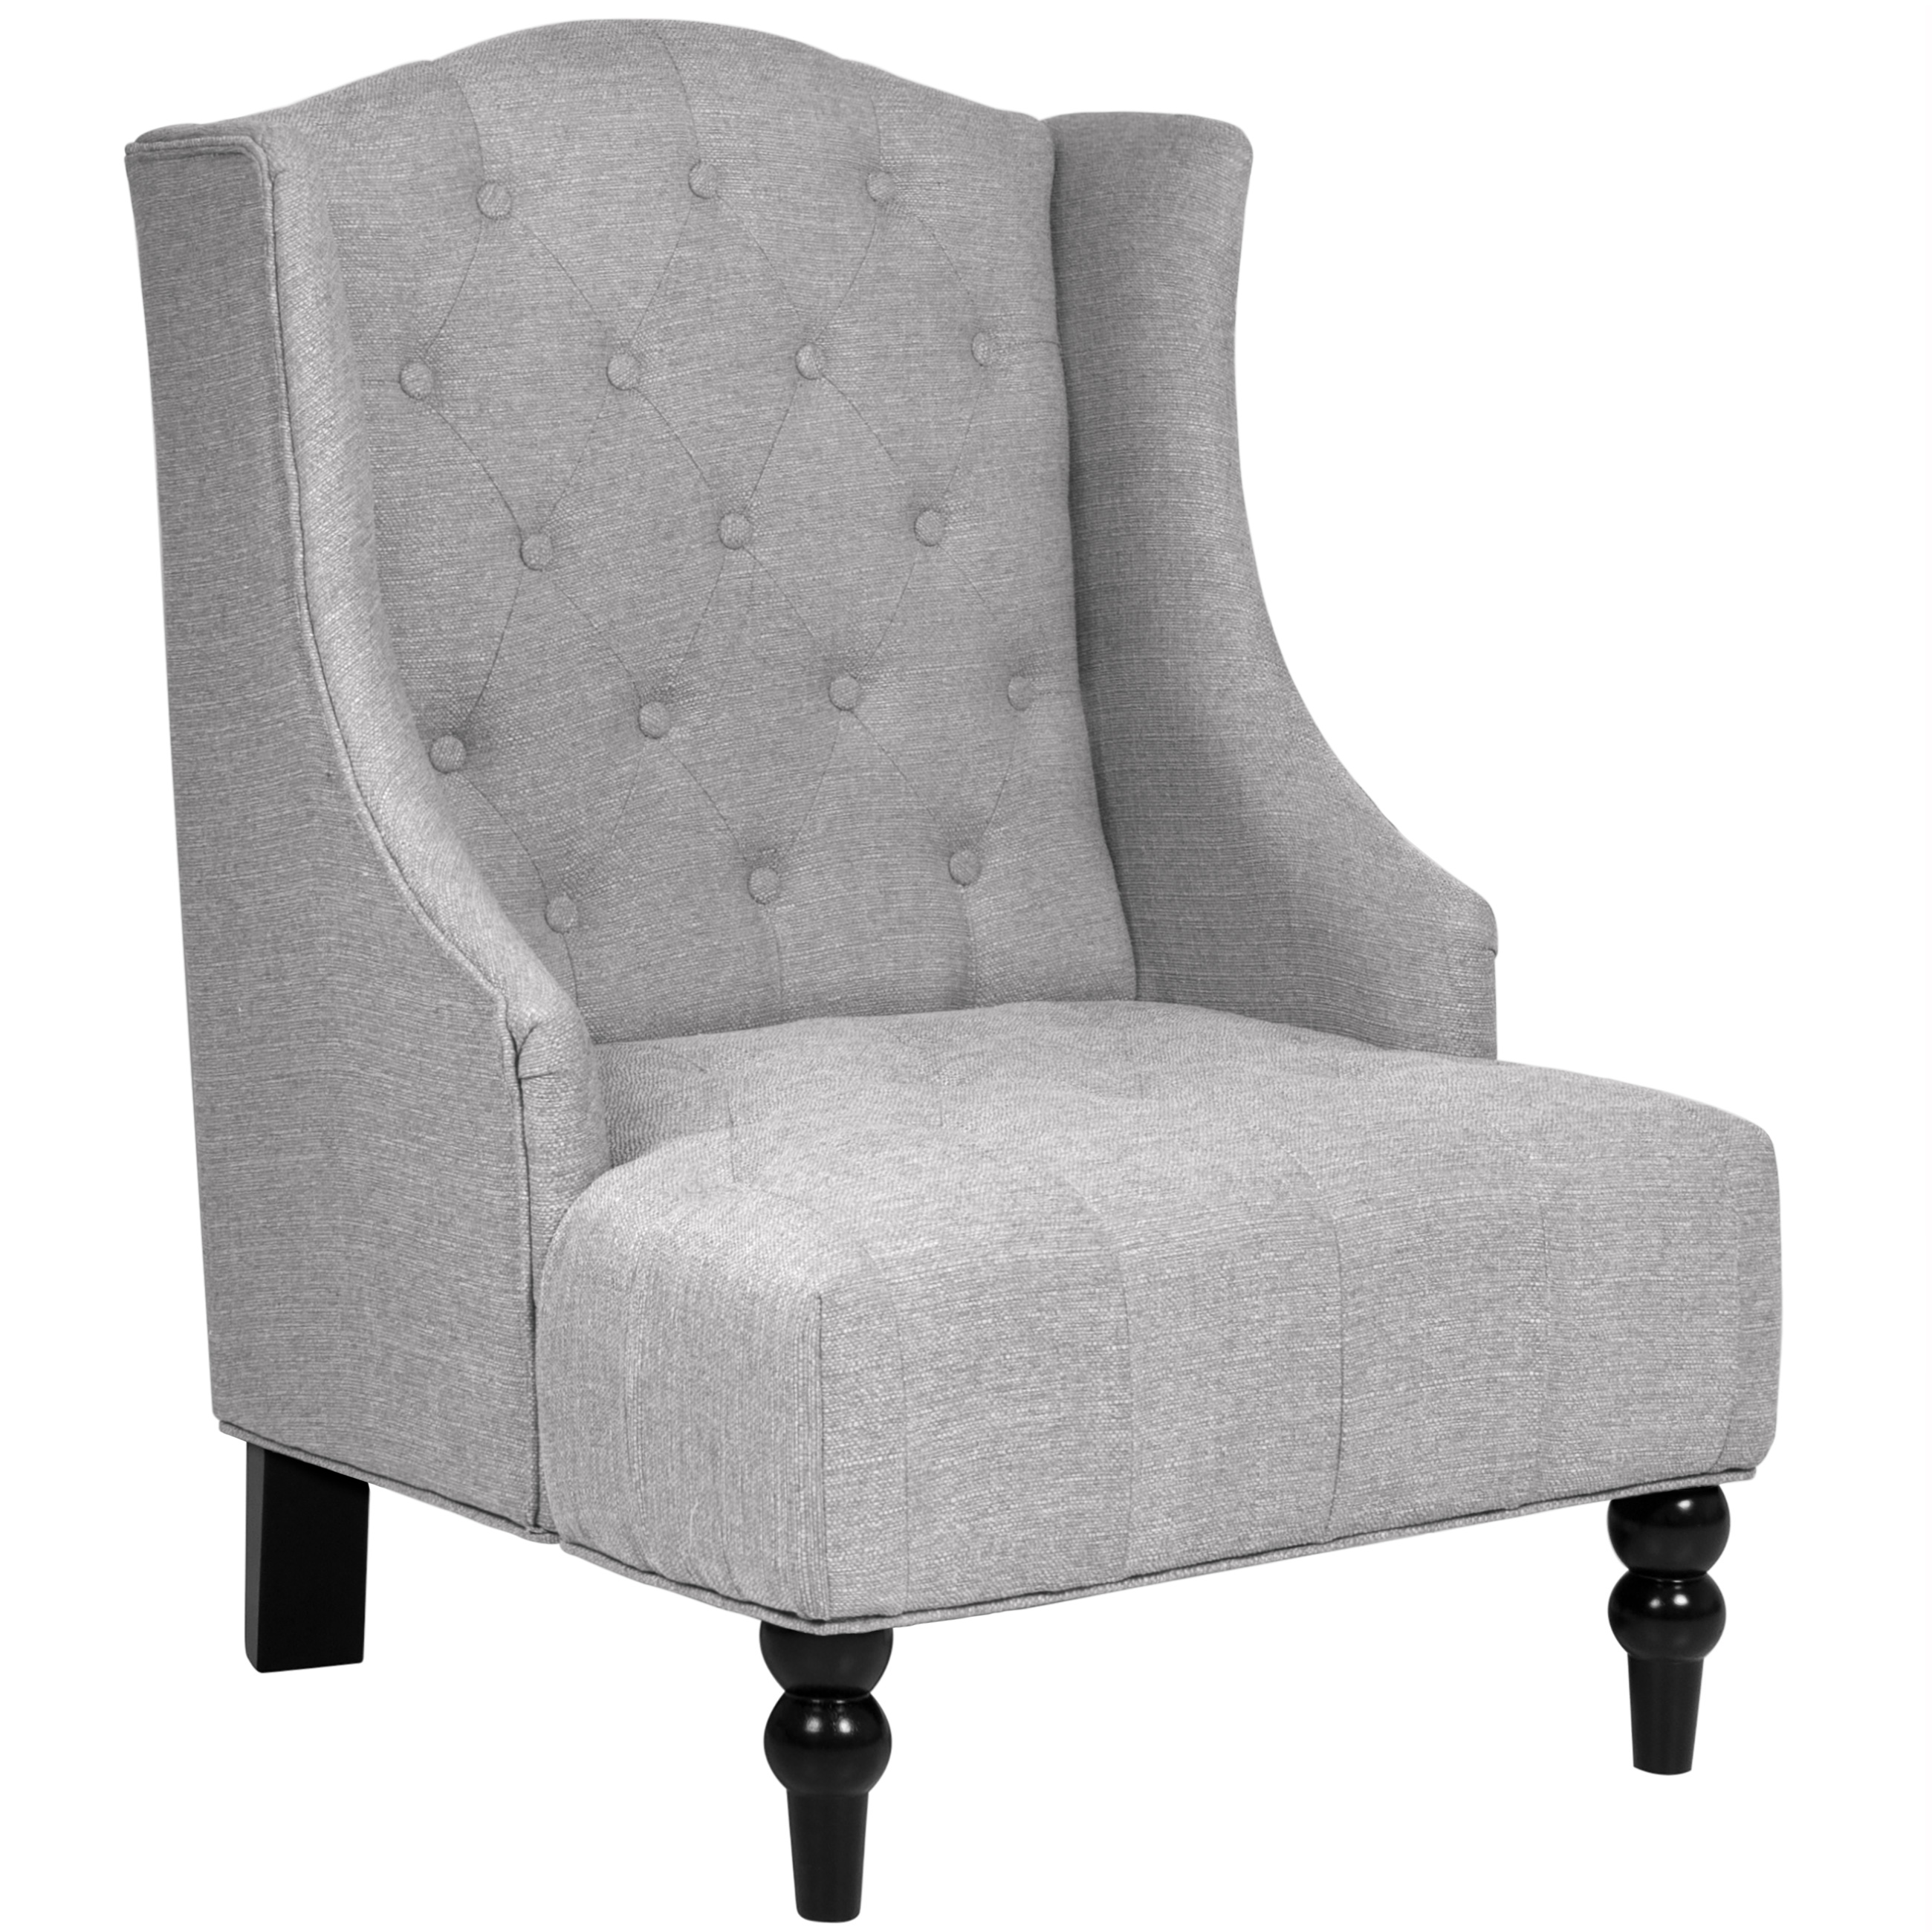 Best Choice Products Tall Wingback Tufted Fabric Accent Chair Gray by Best Choice Products